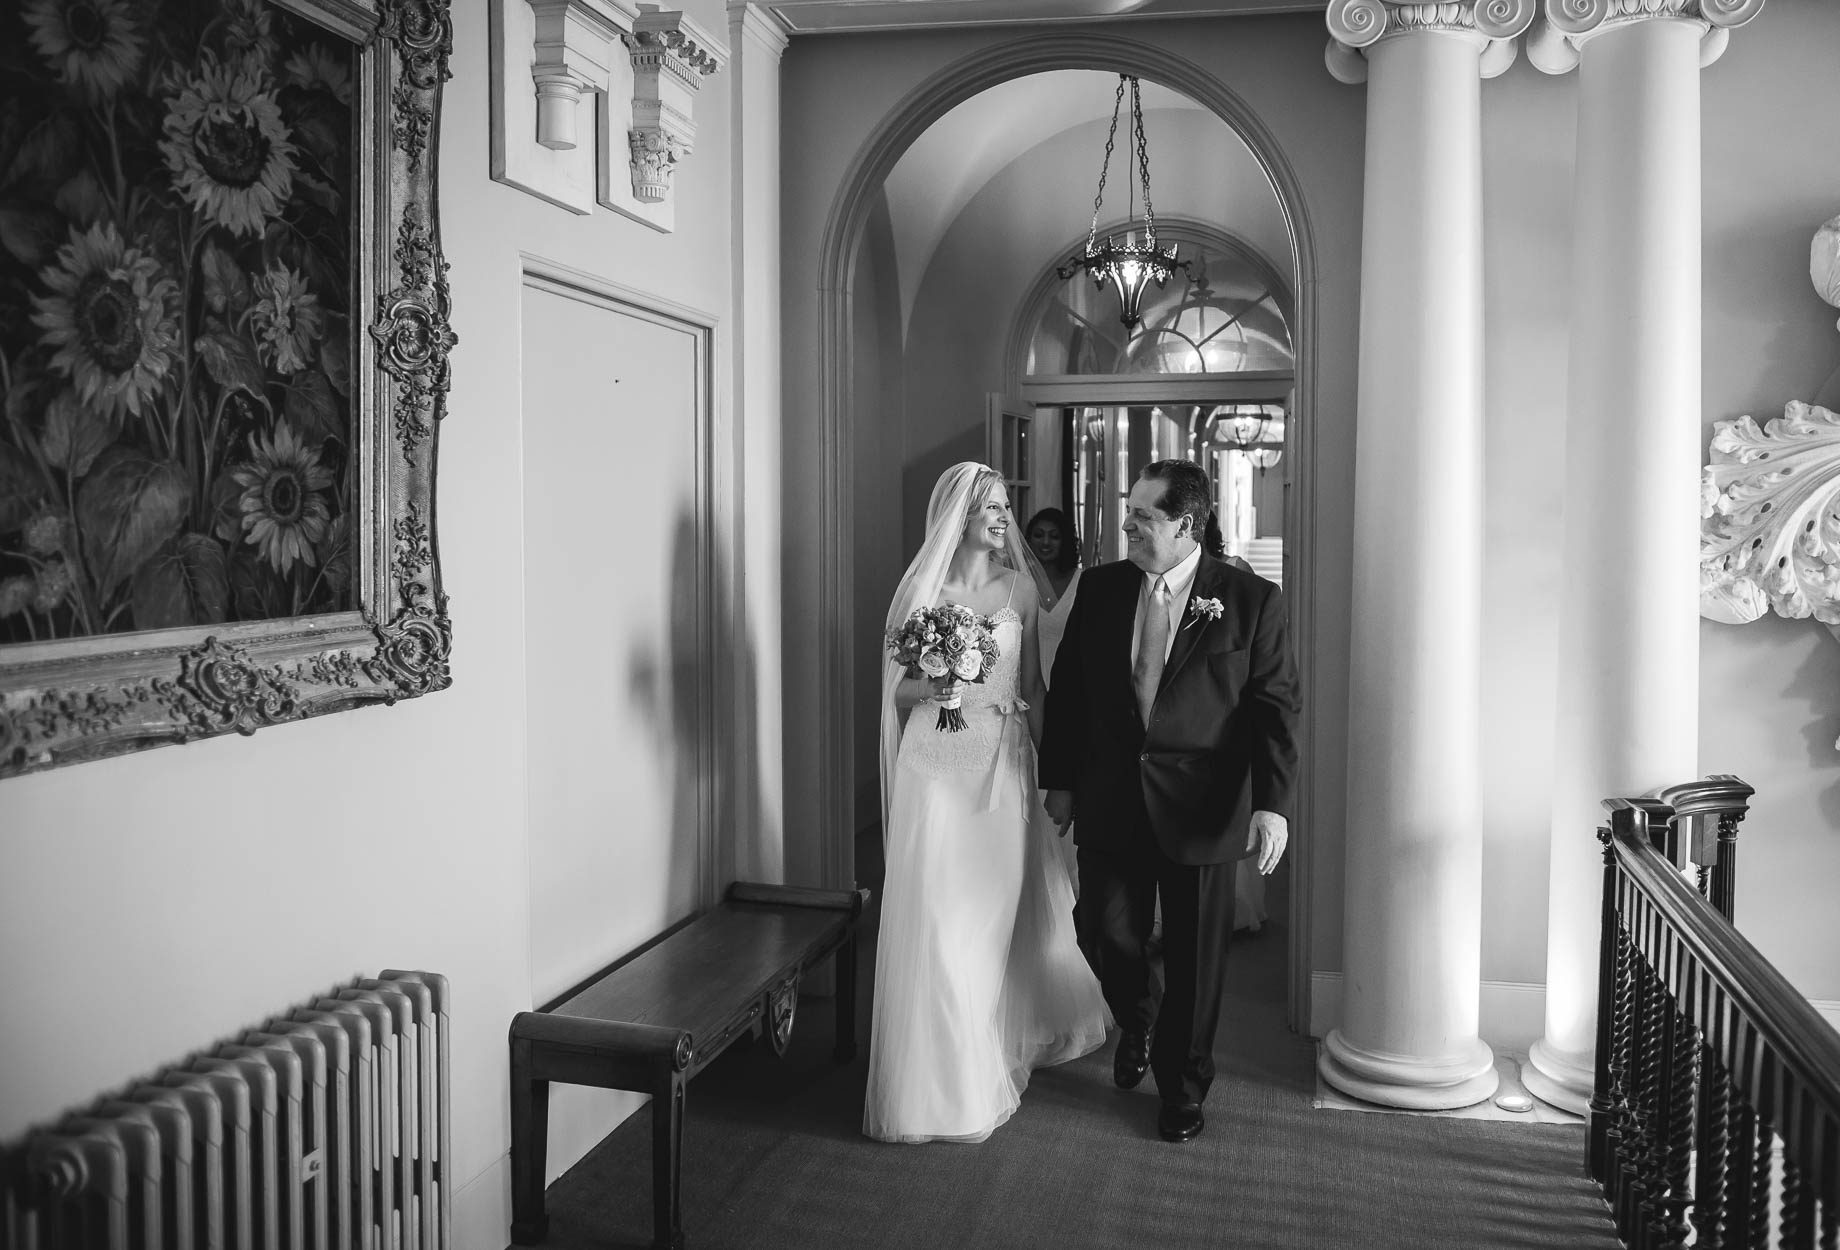 Aynhoe Park wedding photography - Guy Collier - Becky and Nick (88 of 233)